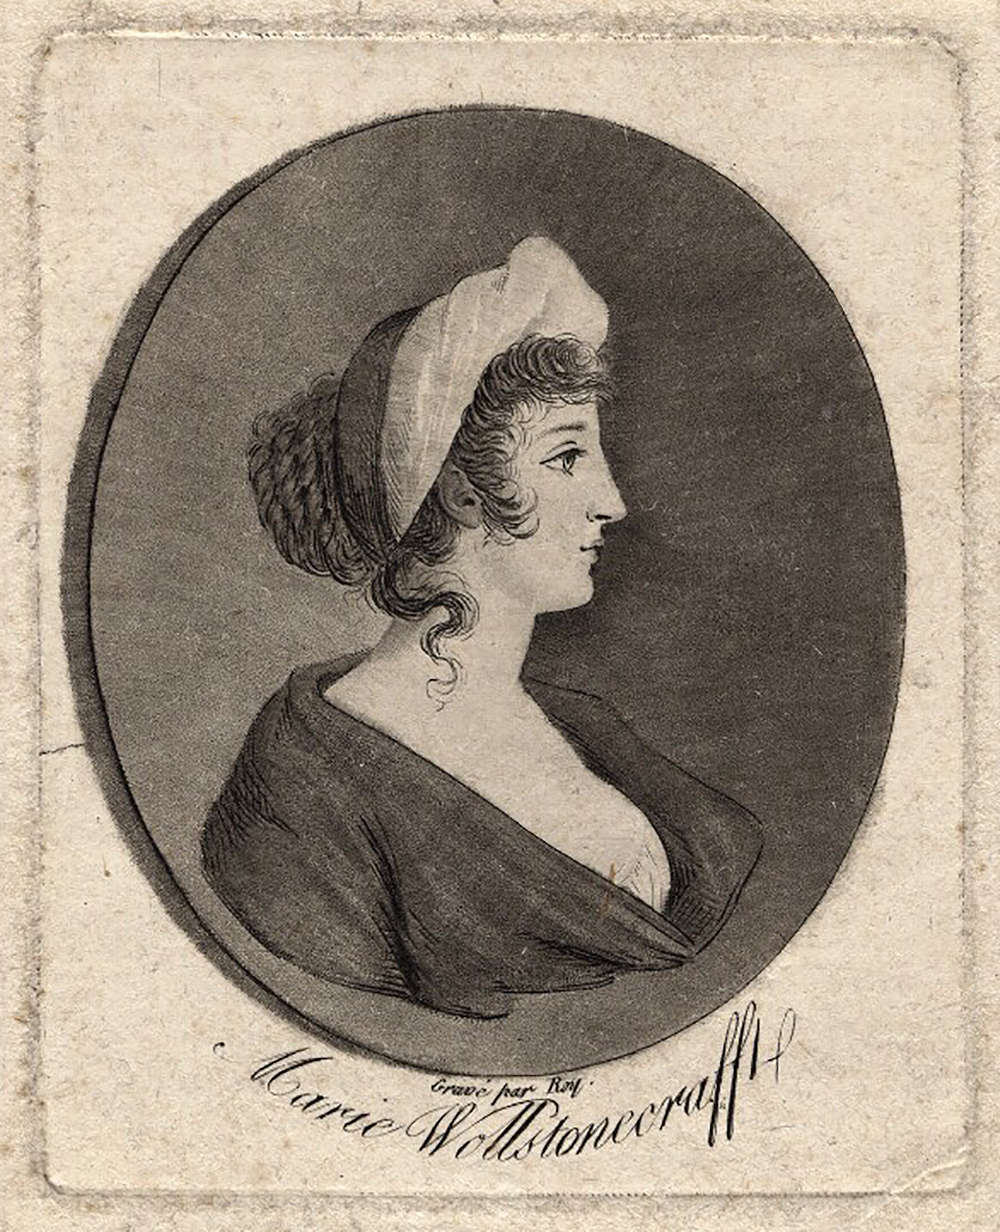 Mary Wollstonecraft, by Roy, after unknown artist, early nineteenth century.